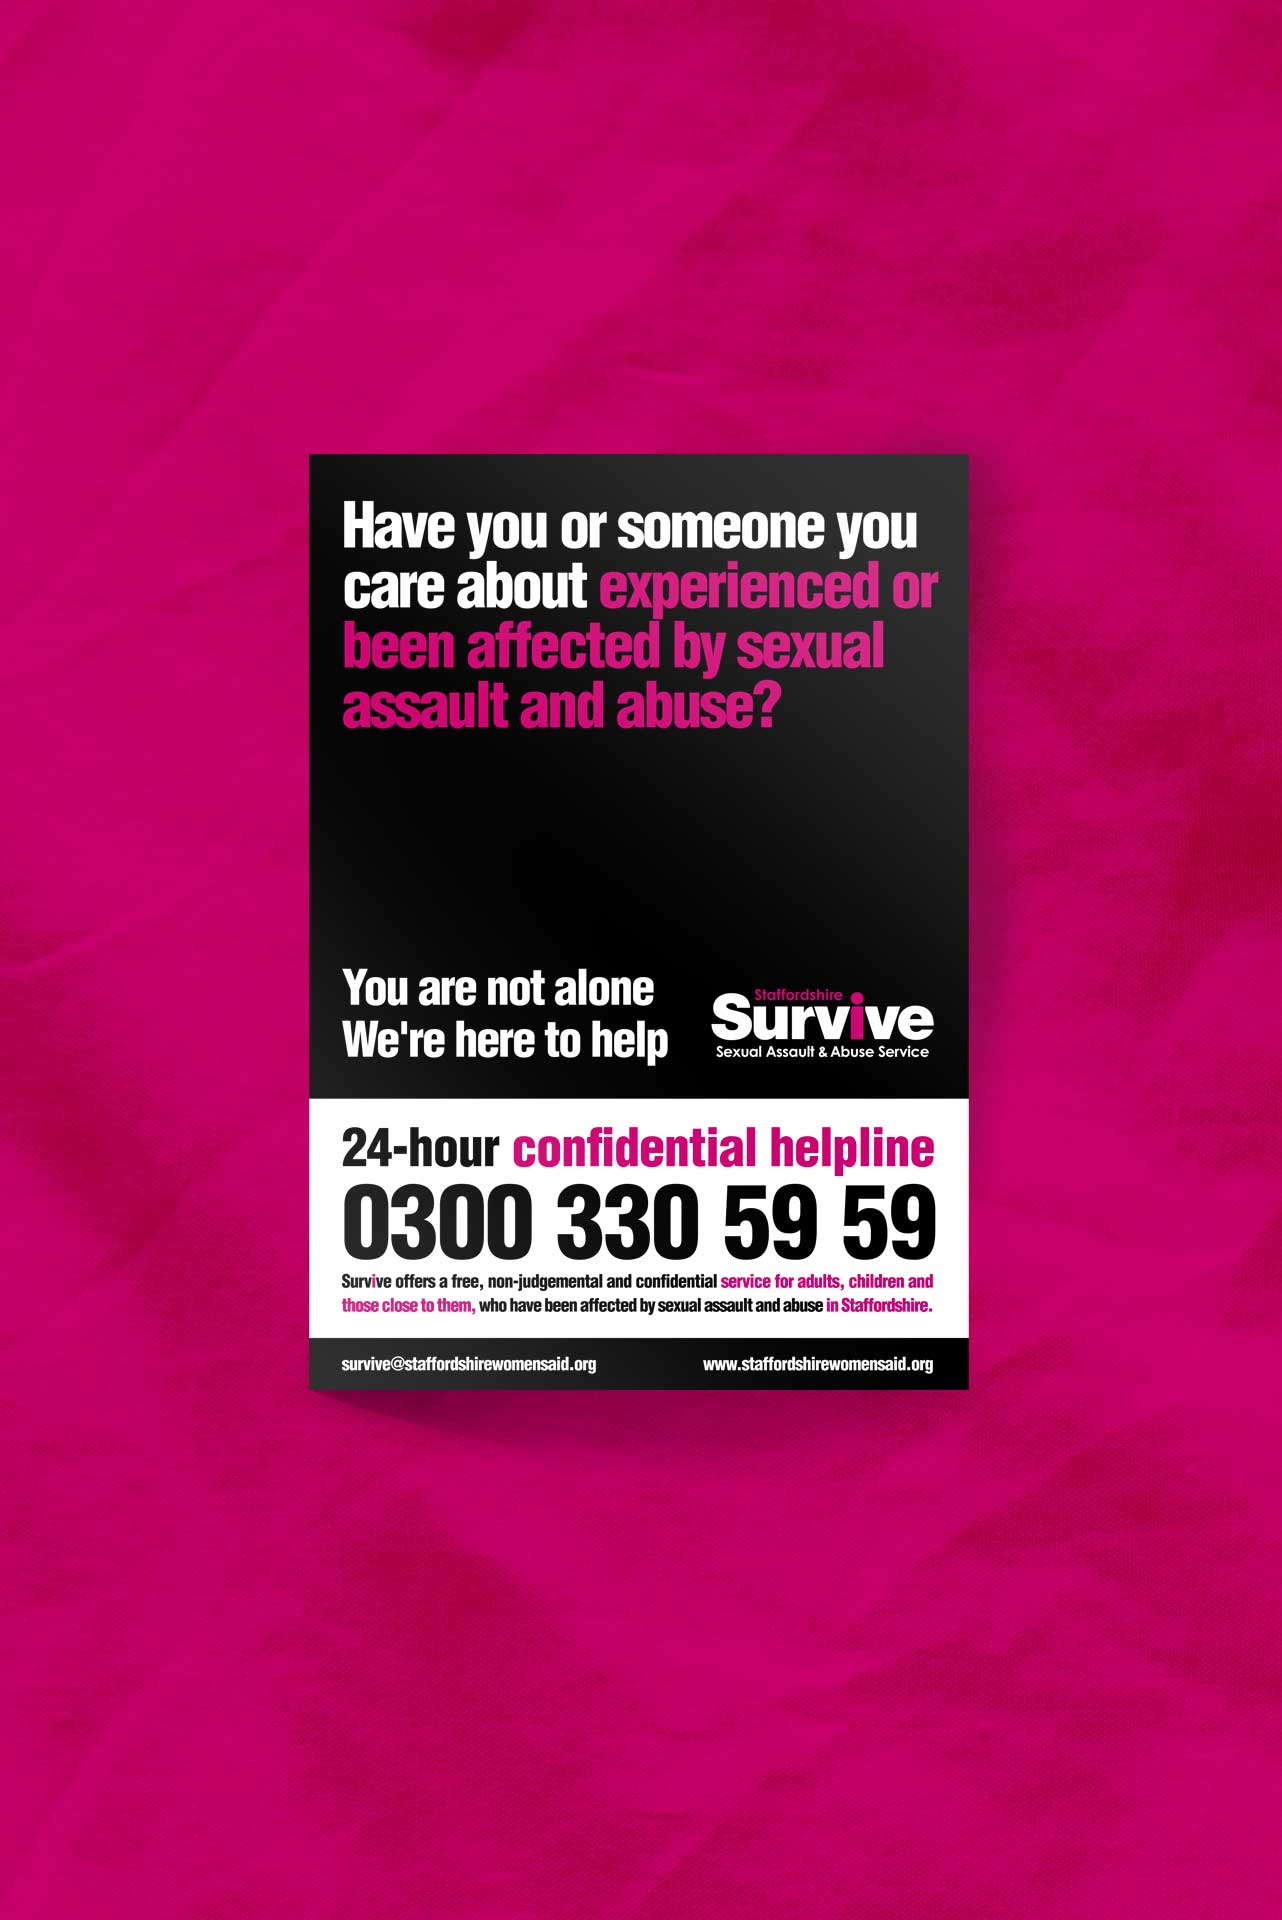 Survive Identity and Leaflet for Staffordshire Women's Aid